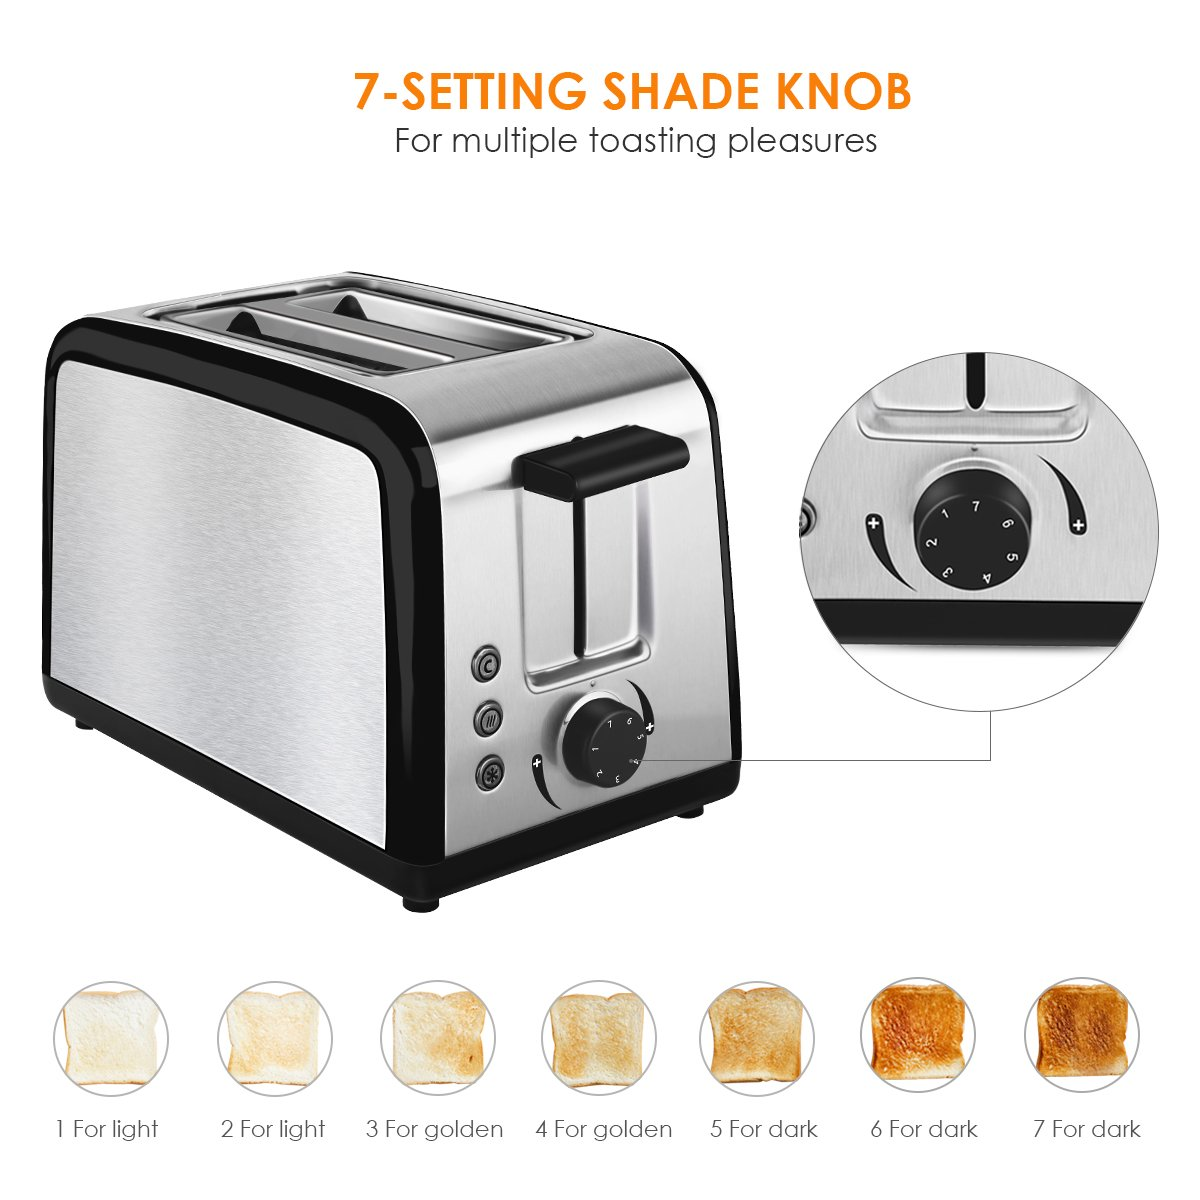 Toaster 2 Slice Warming Rack Brushed Stainless Steel for Breakfast Bread Toasters Best Rated Has Defrost Reheat Cancel Button Removable Crumb Tray By KEEMO by Keemo (Image #6)